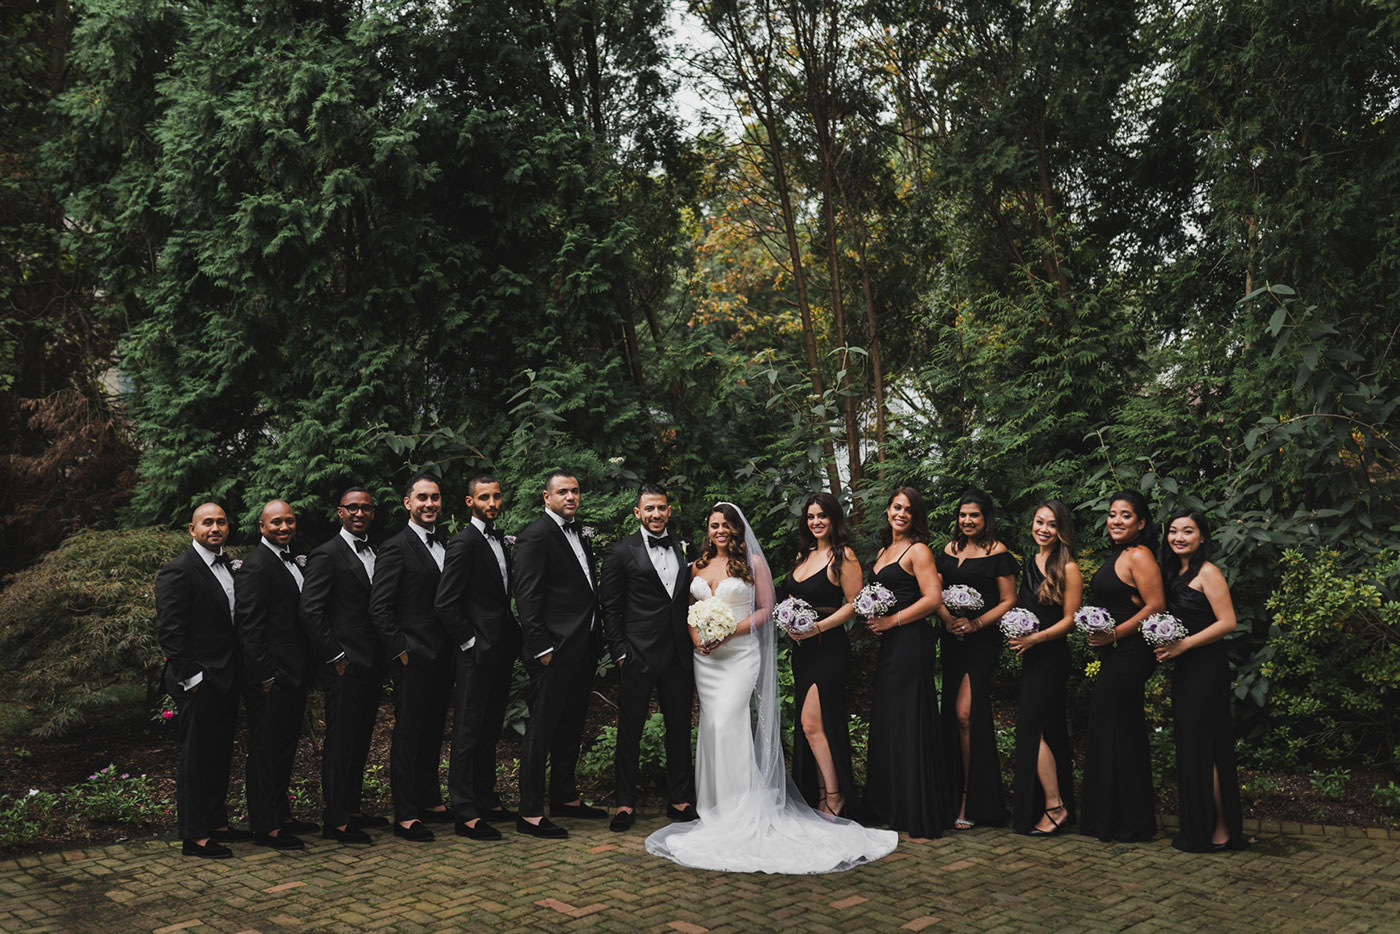 formal bridal party photo at the Estate at Florentine Gardens by Weddings by Hanel